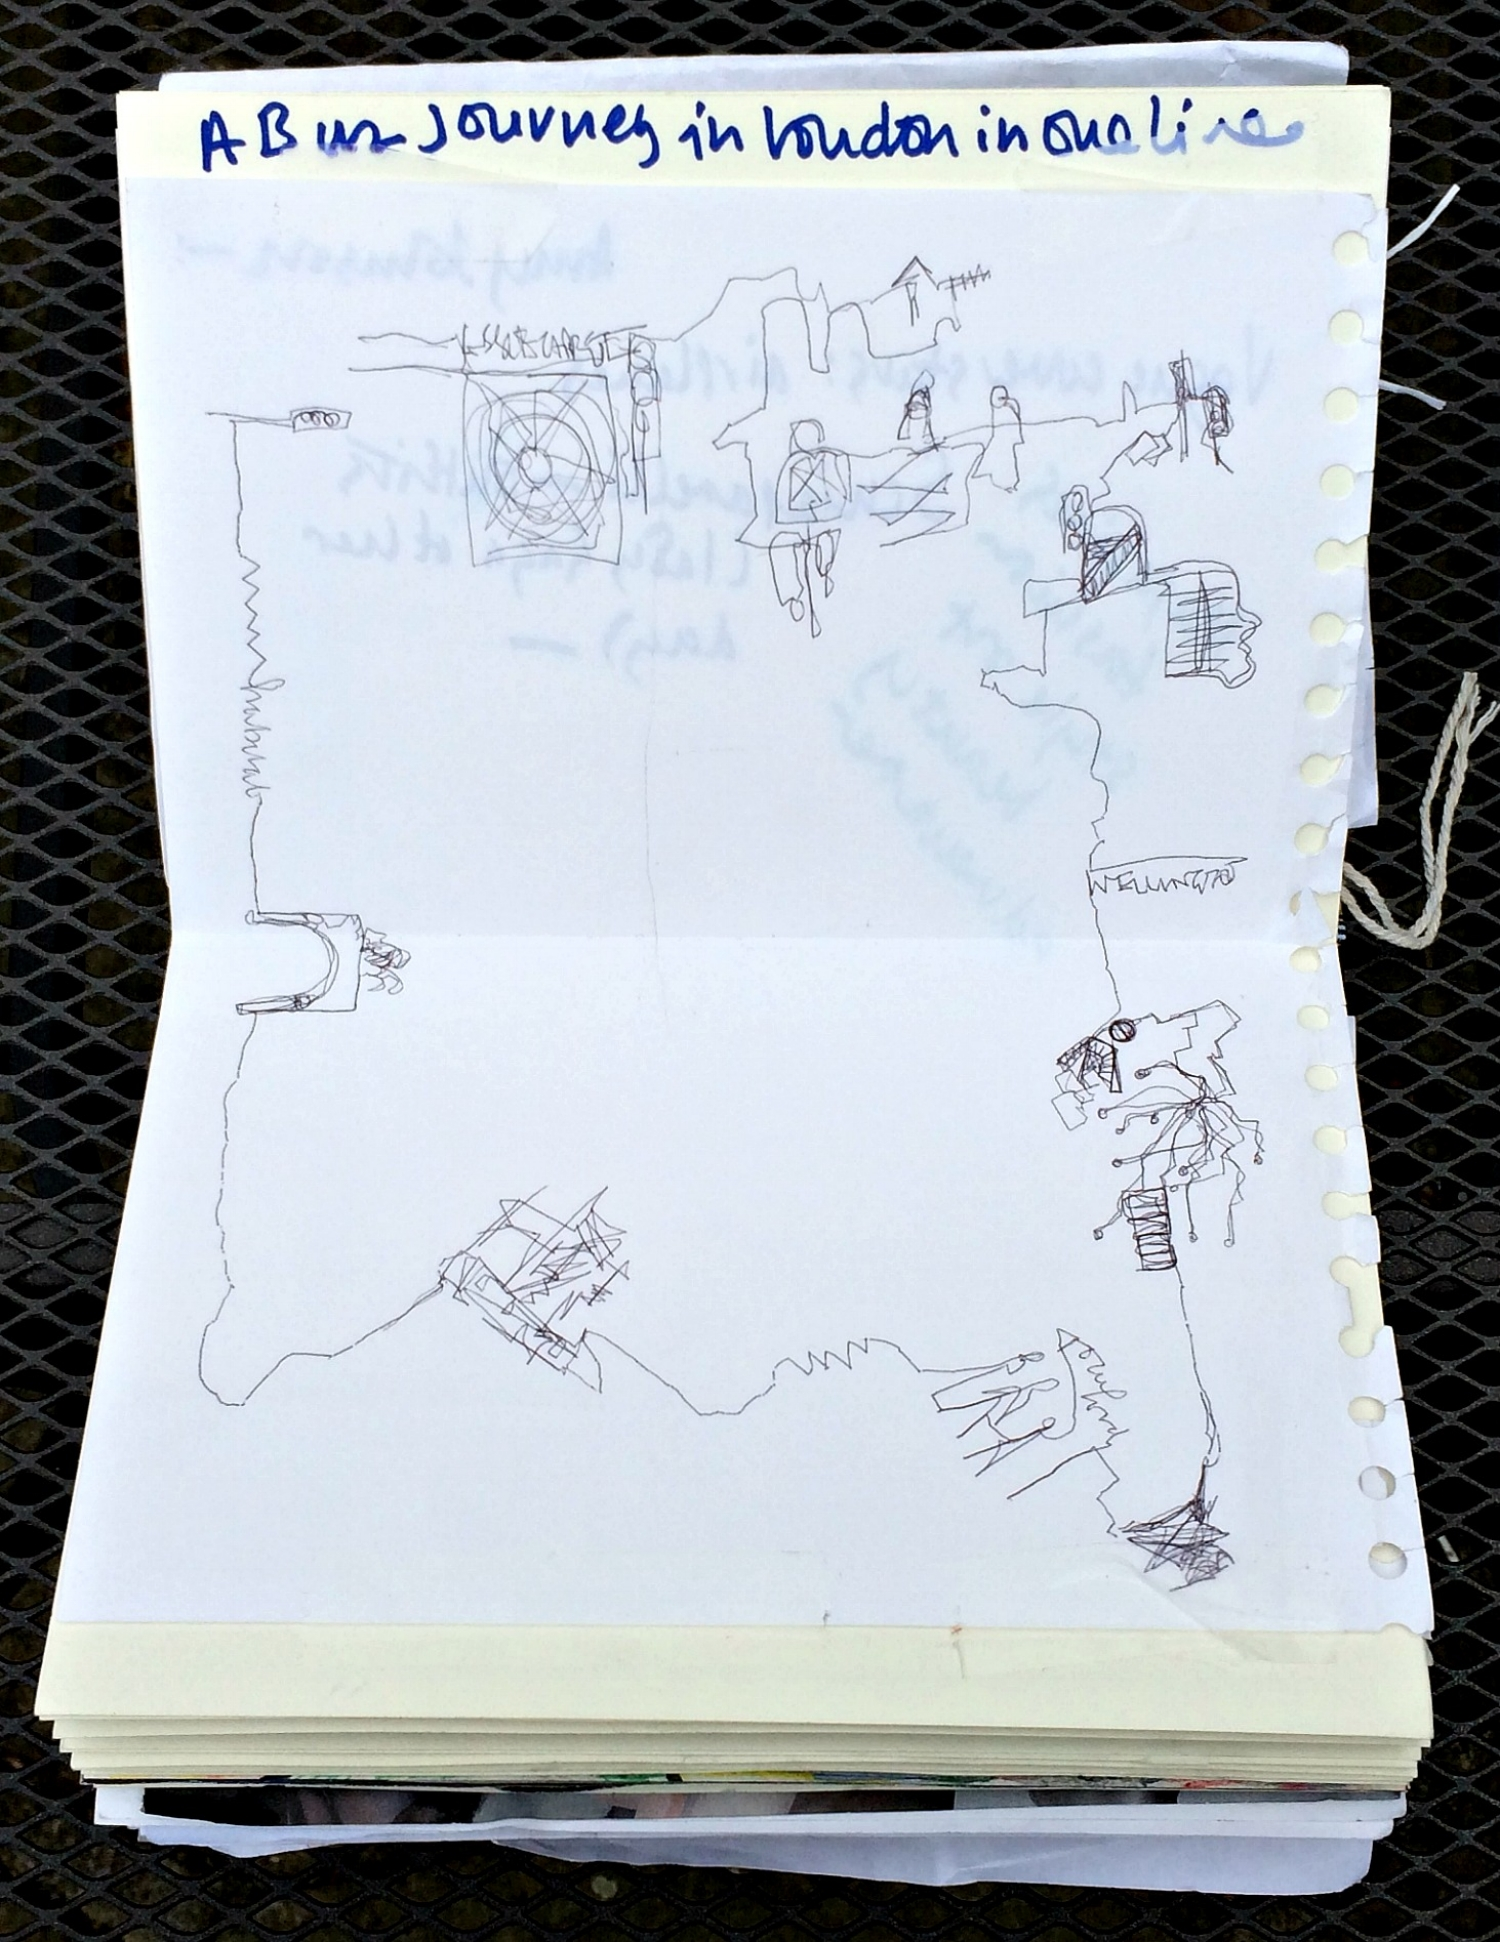 Altered Book (Disco Dance Moves): bus journey in one line